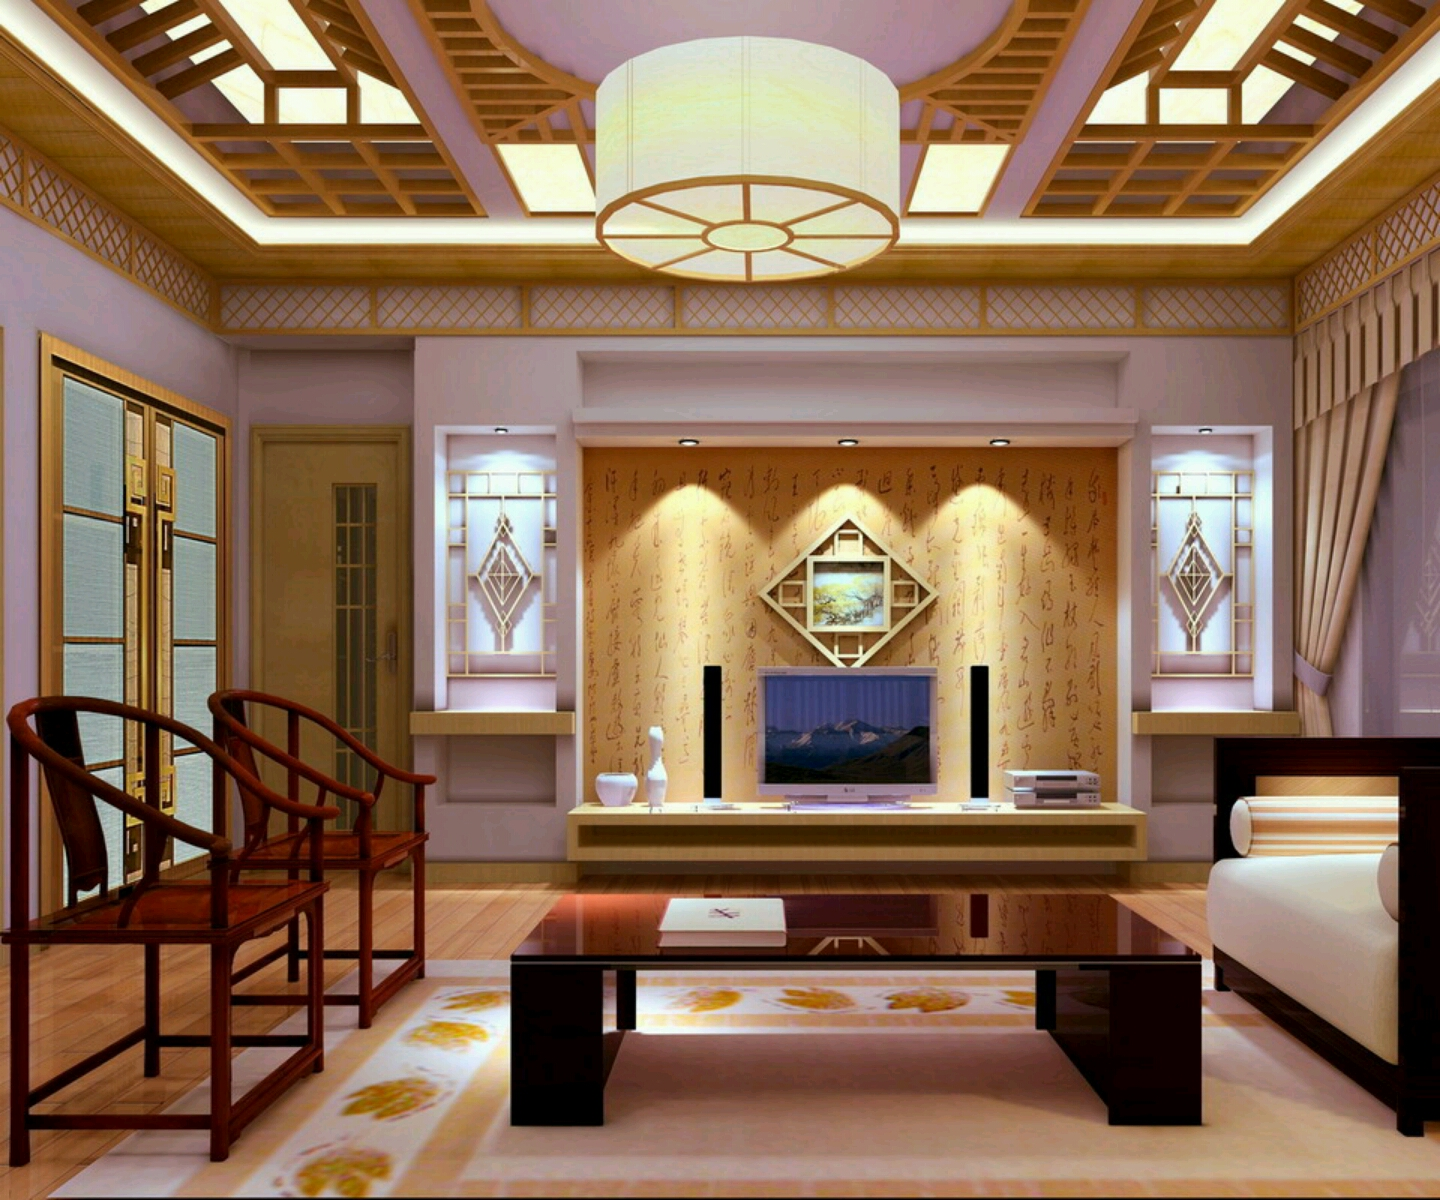 New home designs latest homes interior designs studyrooms for House interior design photos